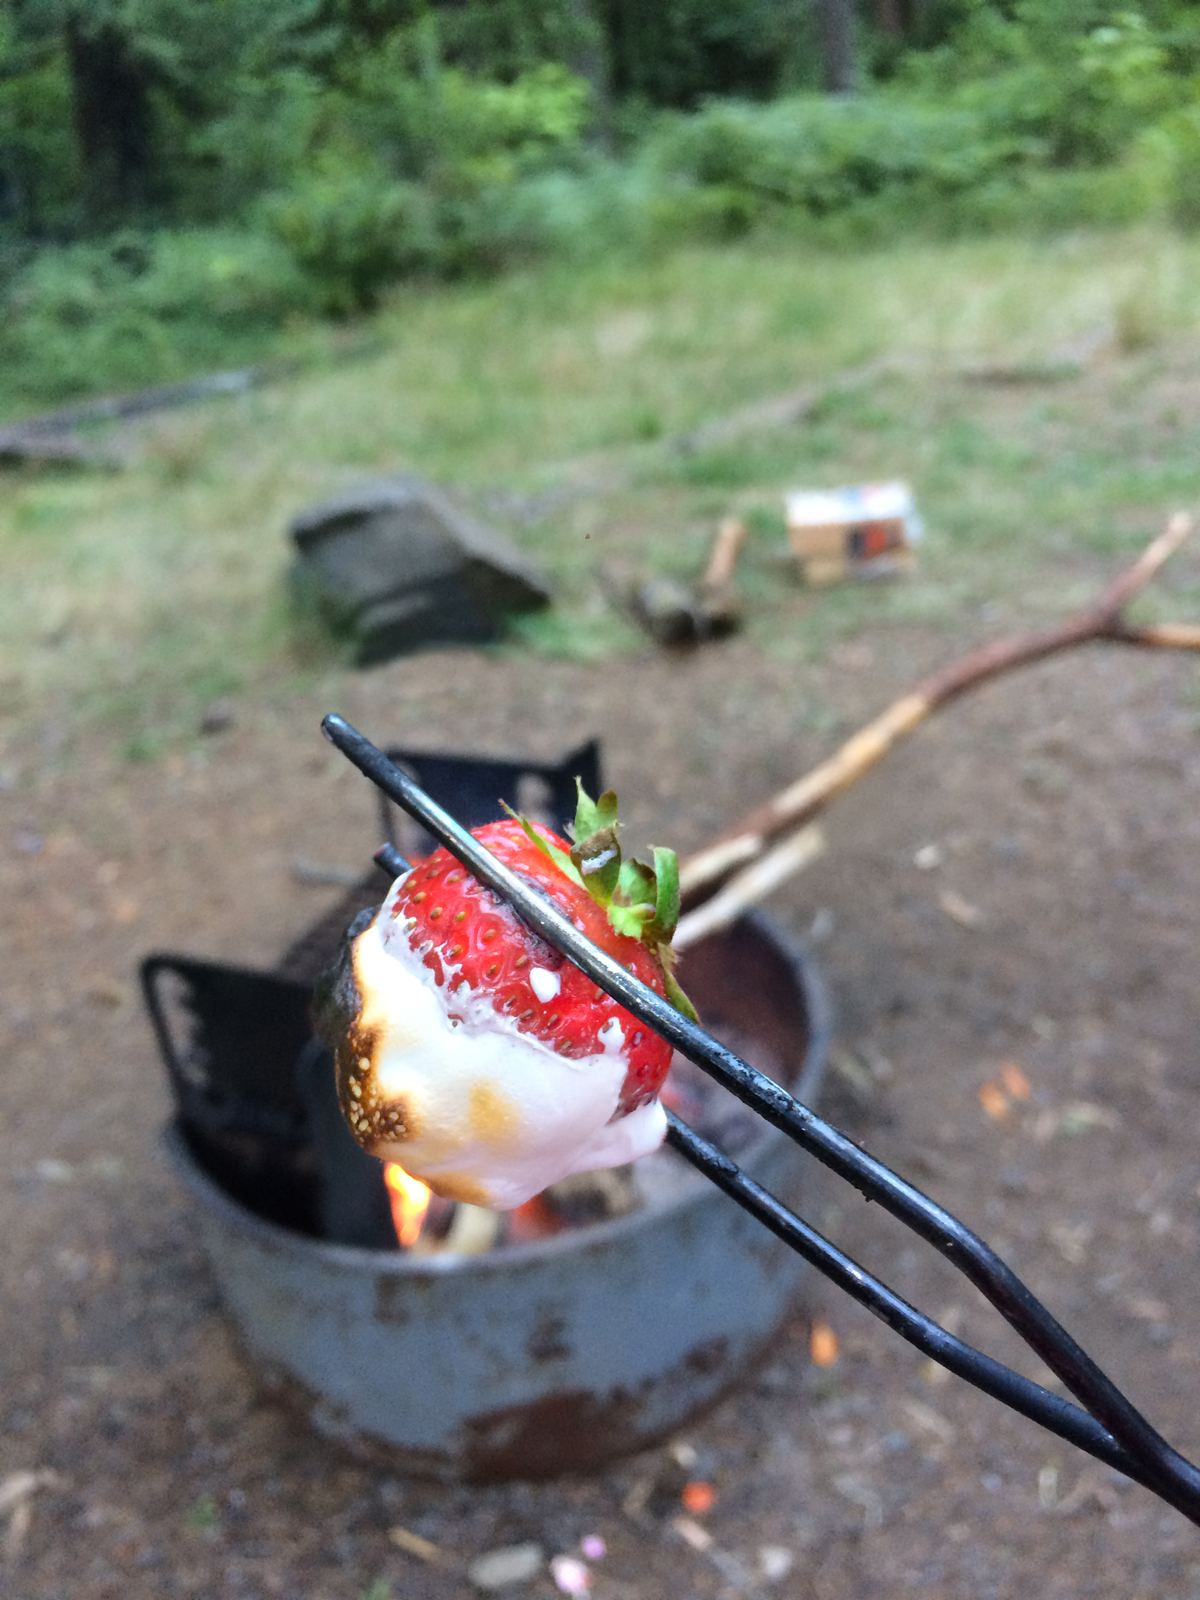 Strawberries and marshmallow fluff roasted over a campfire